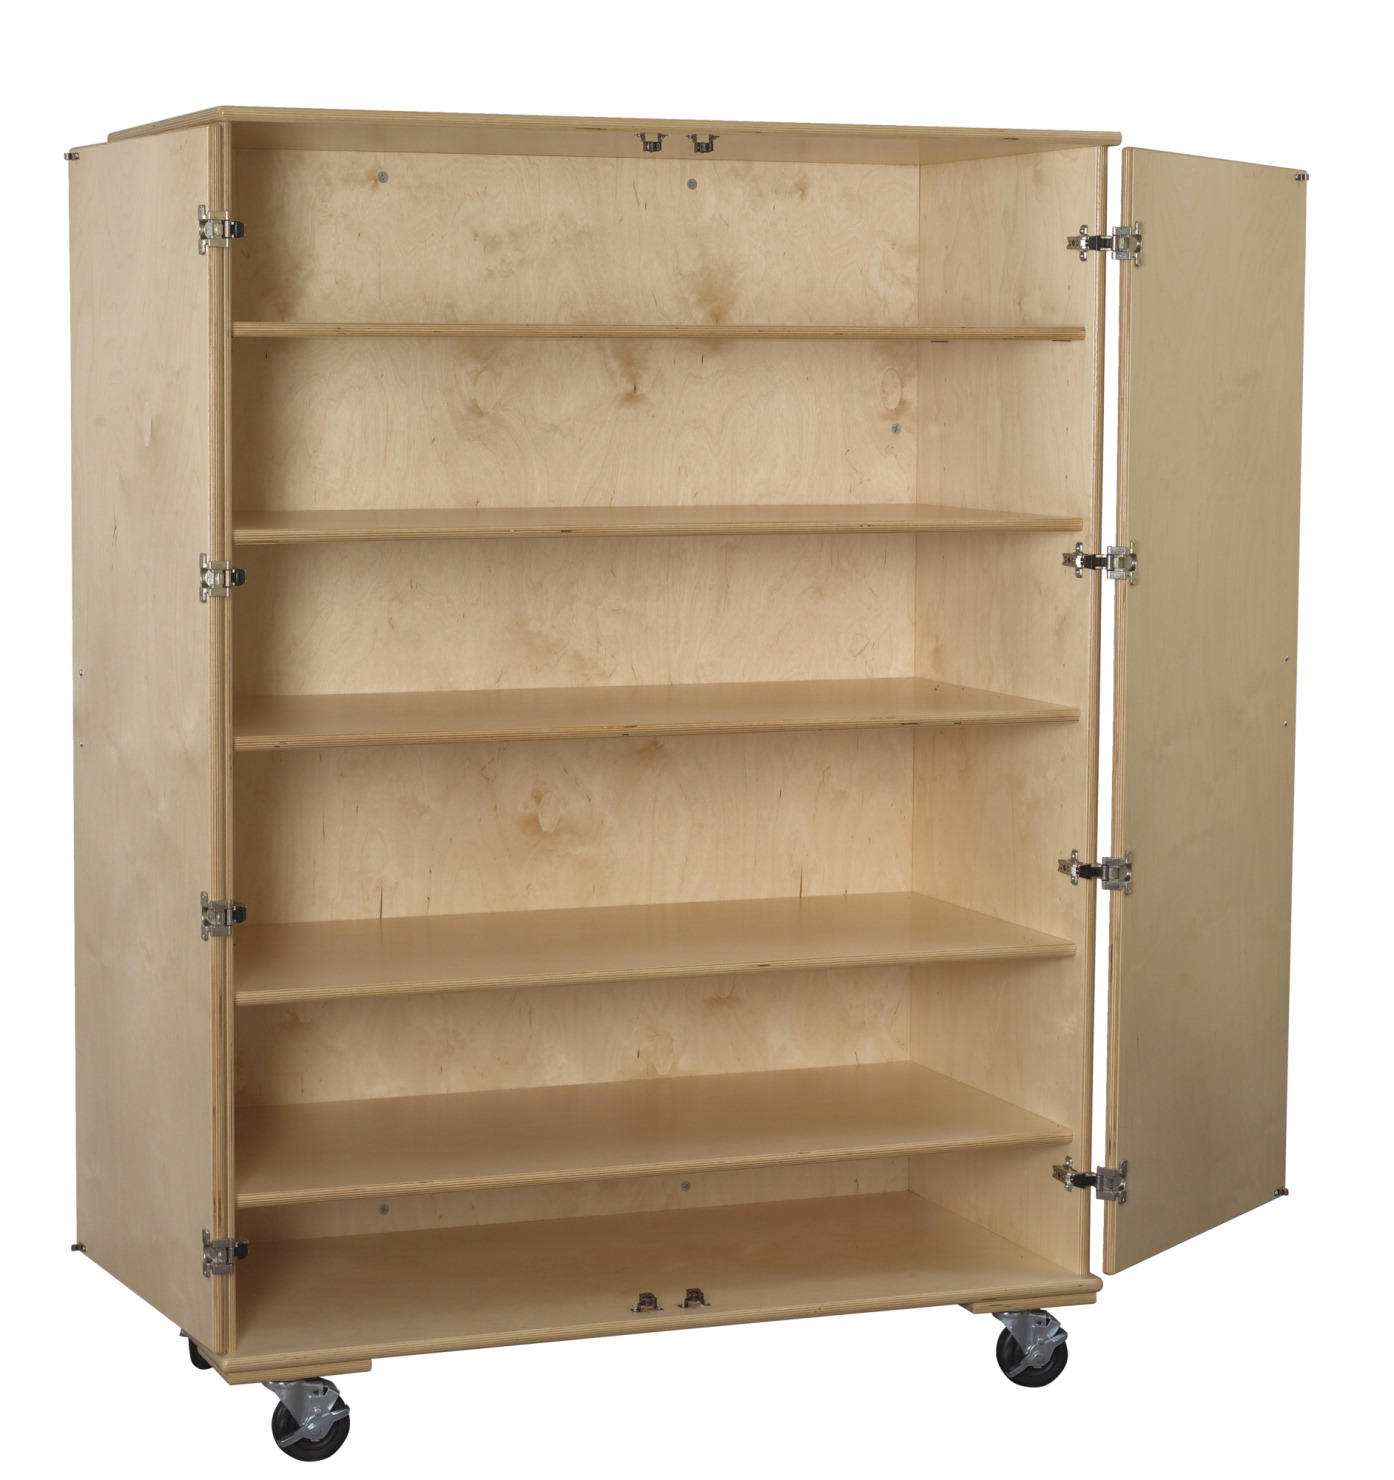 Classroom Select Large Mobile Storage Cabinet, 5 Adjustable Shelves, 48 W x 24 D x 67 H in, Birch